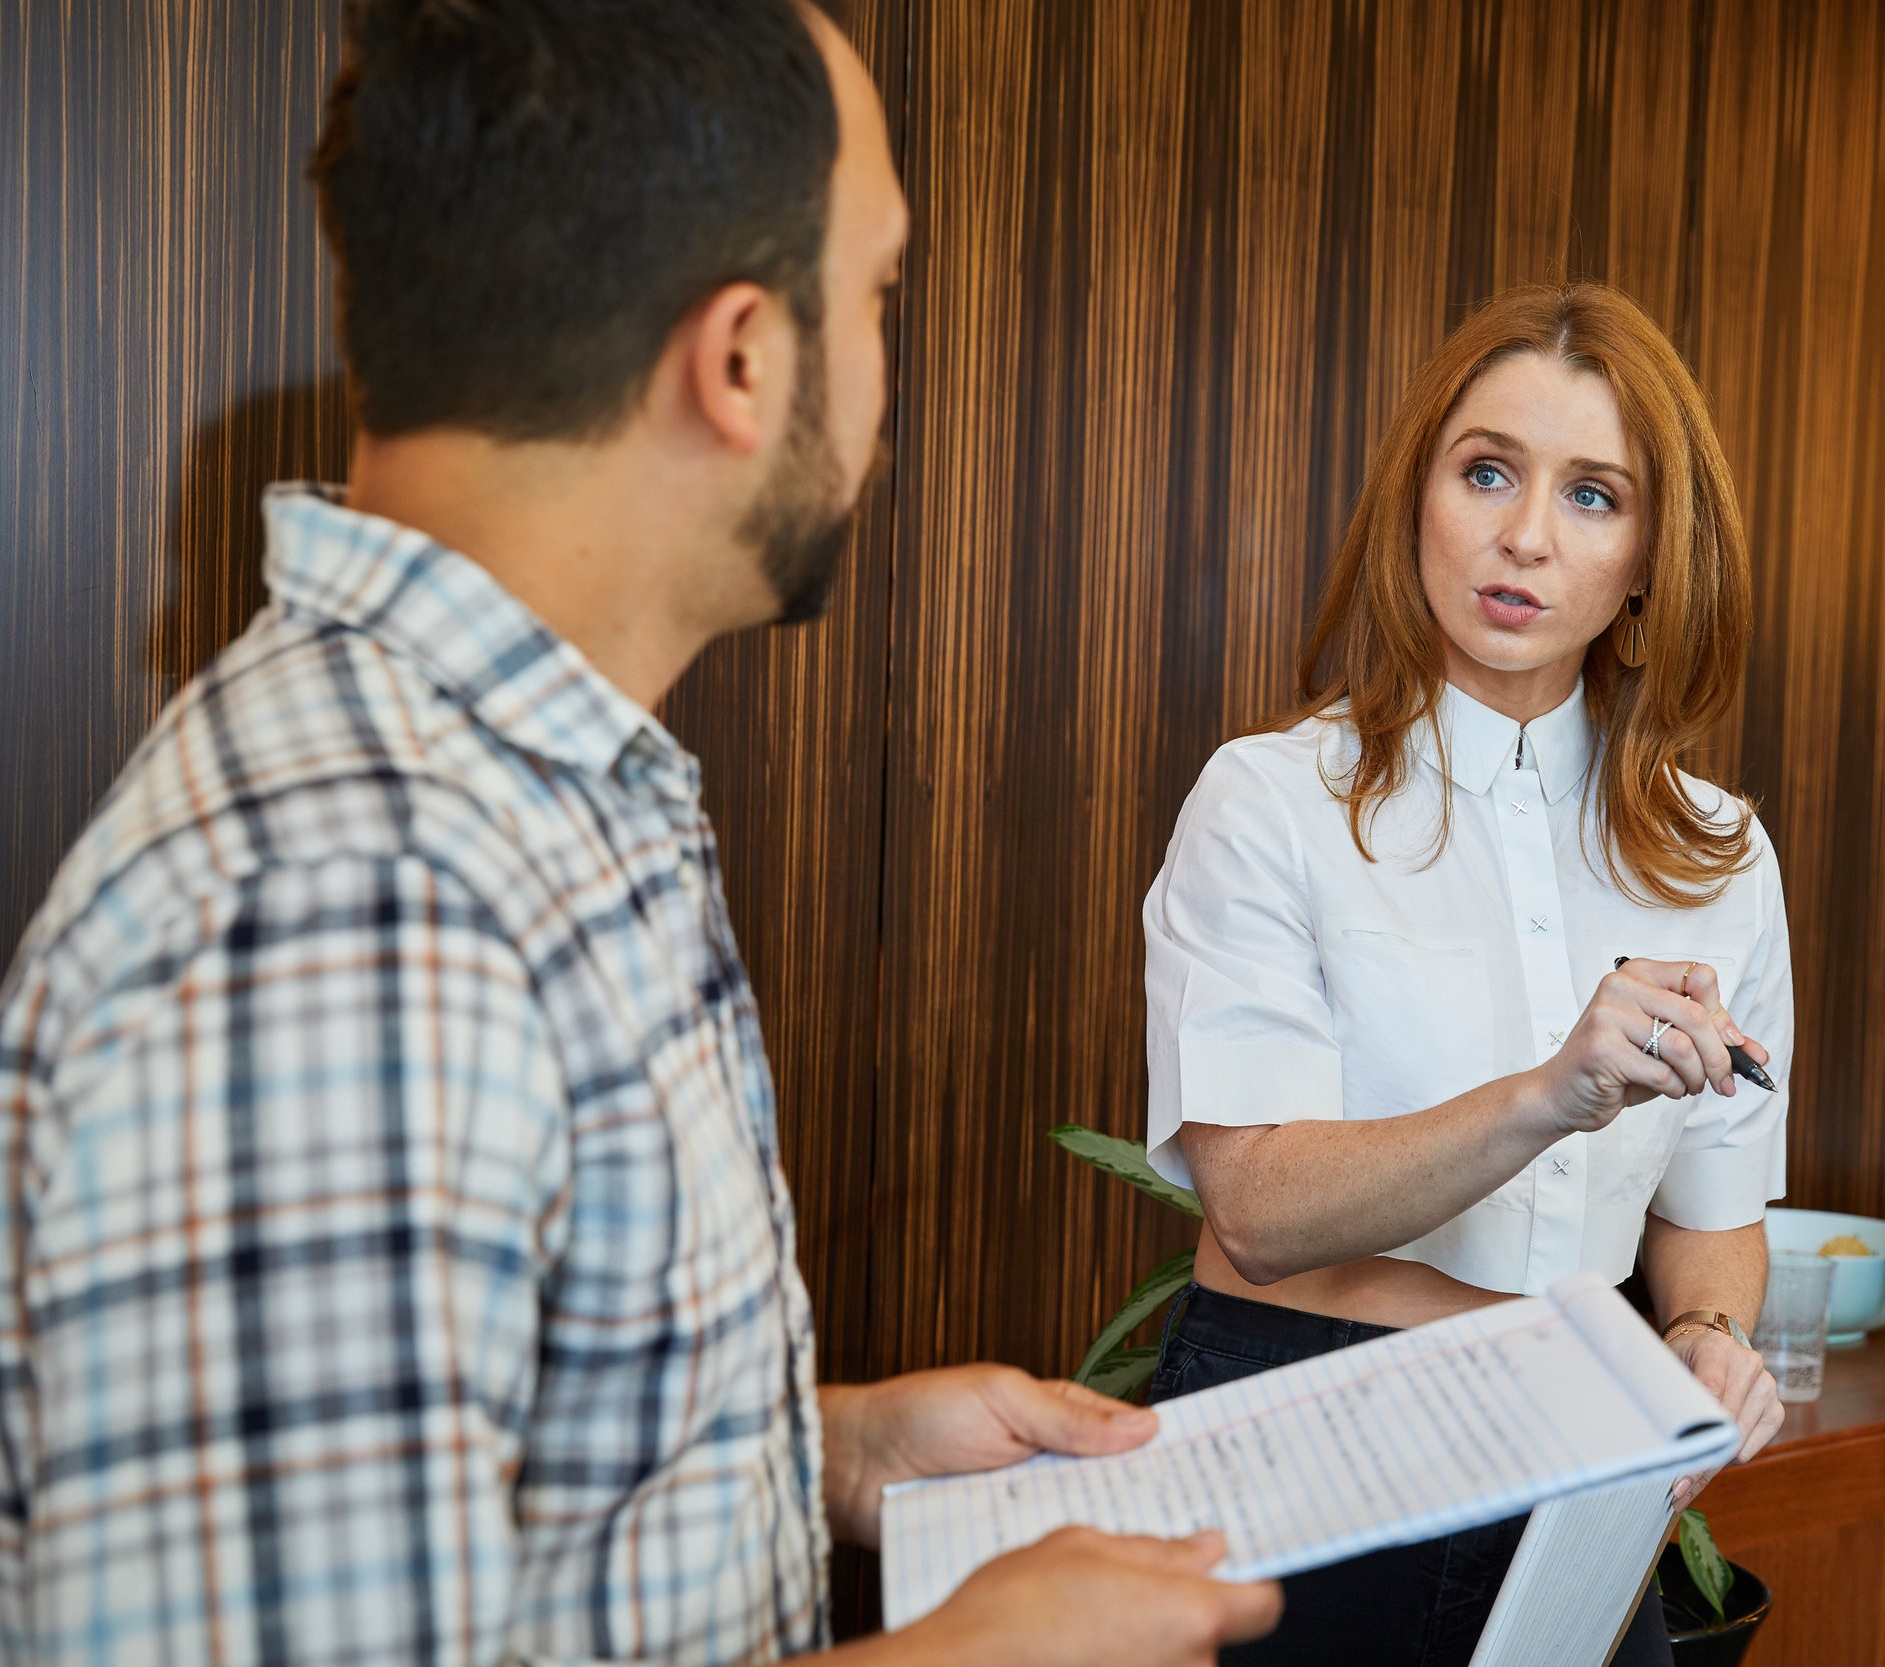 A mid-level training with the keys to powerful negotiation tools through creating your persona